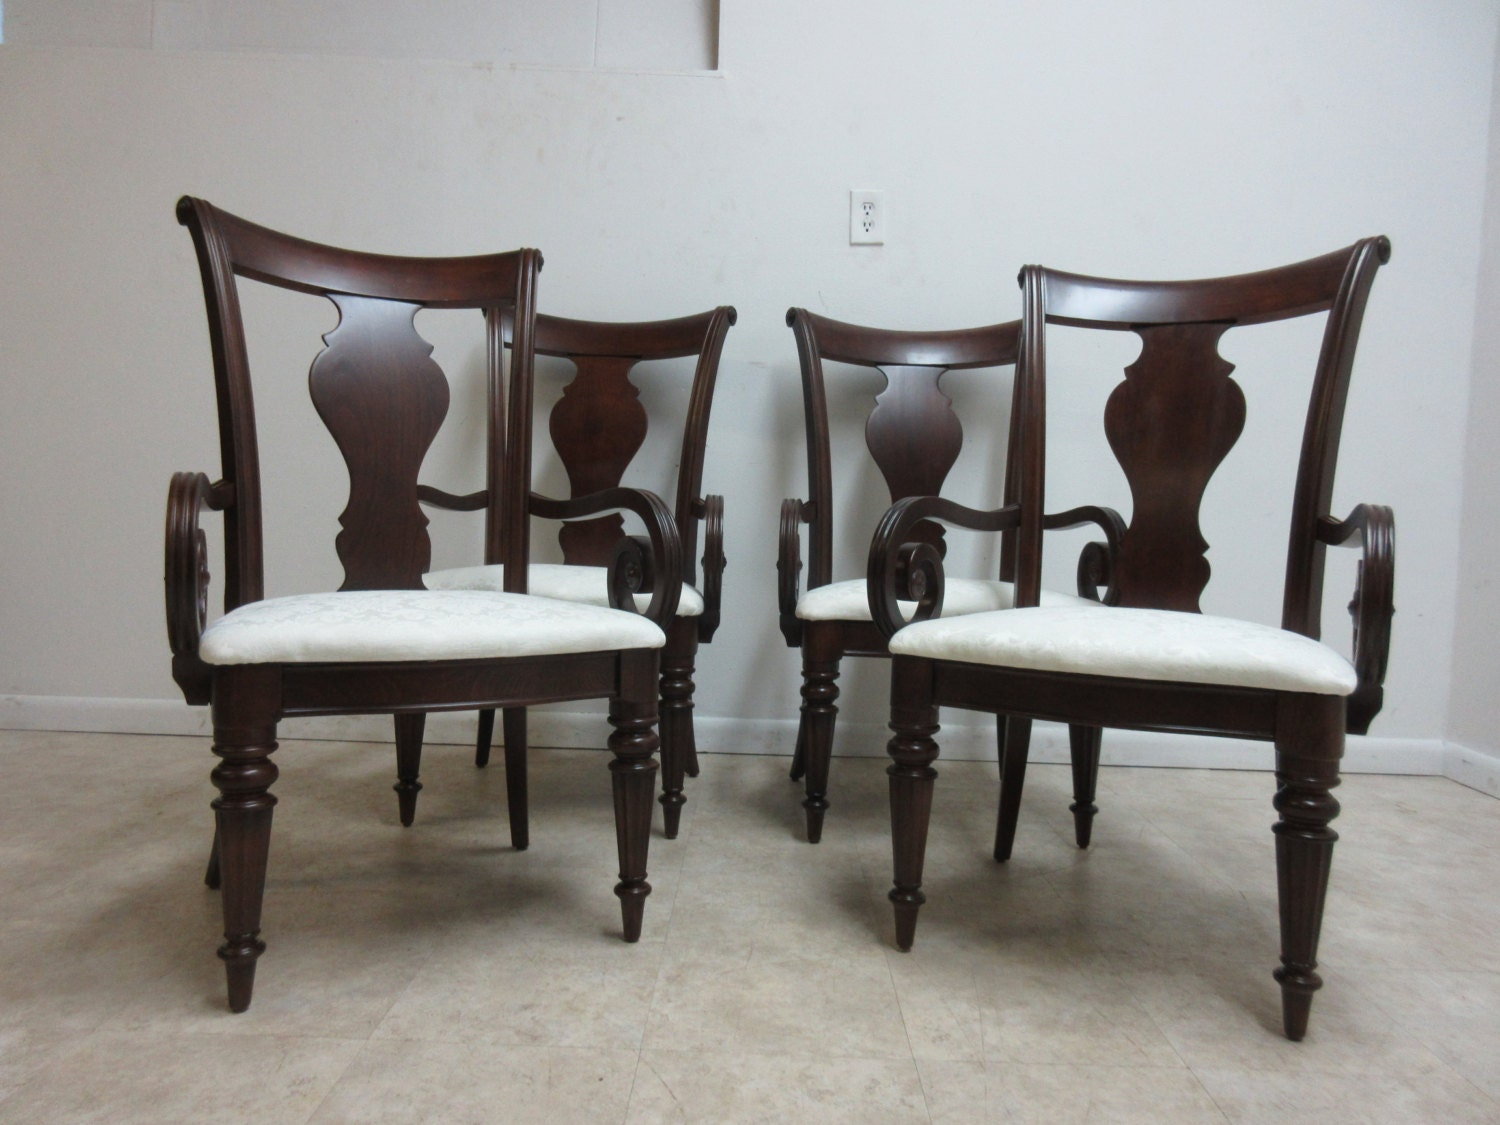 pennsylvania house cherry dining room furniture | Set of 4 Pennsylvania House Cherry Cortland Manor Dining ...